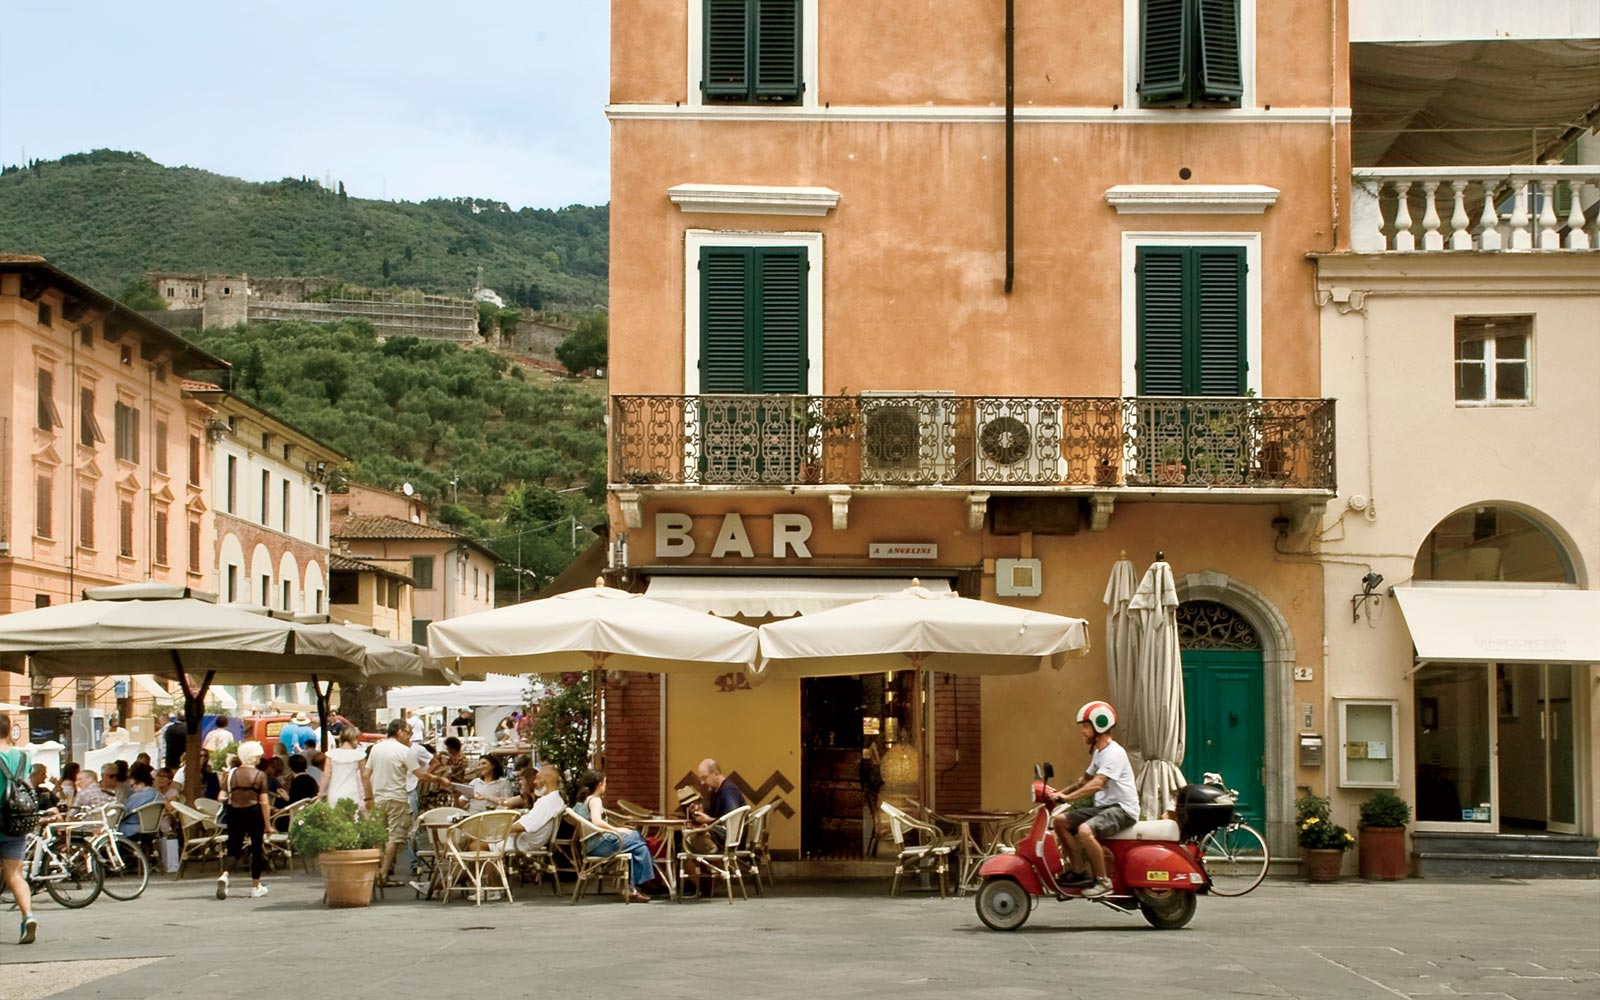 Riding a scooter through the town of Pietrasanta, in Tuscany, Italy